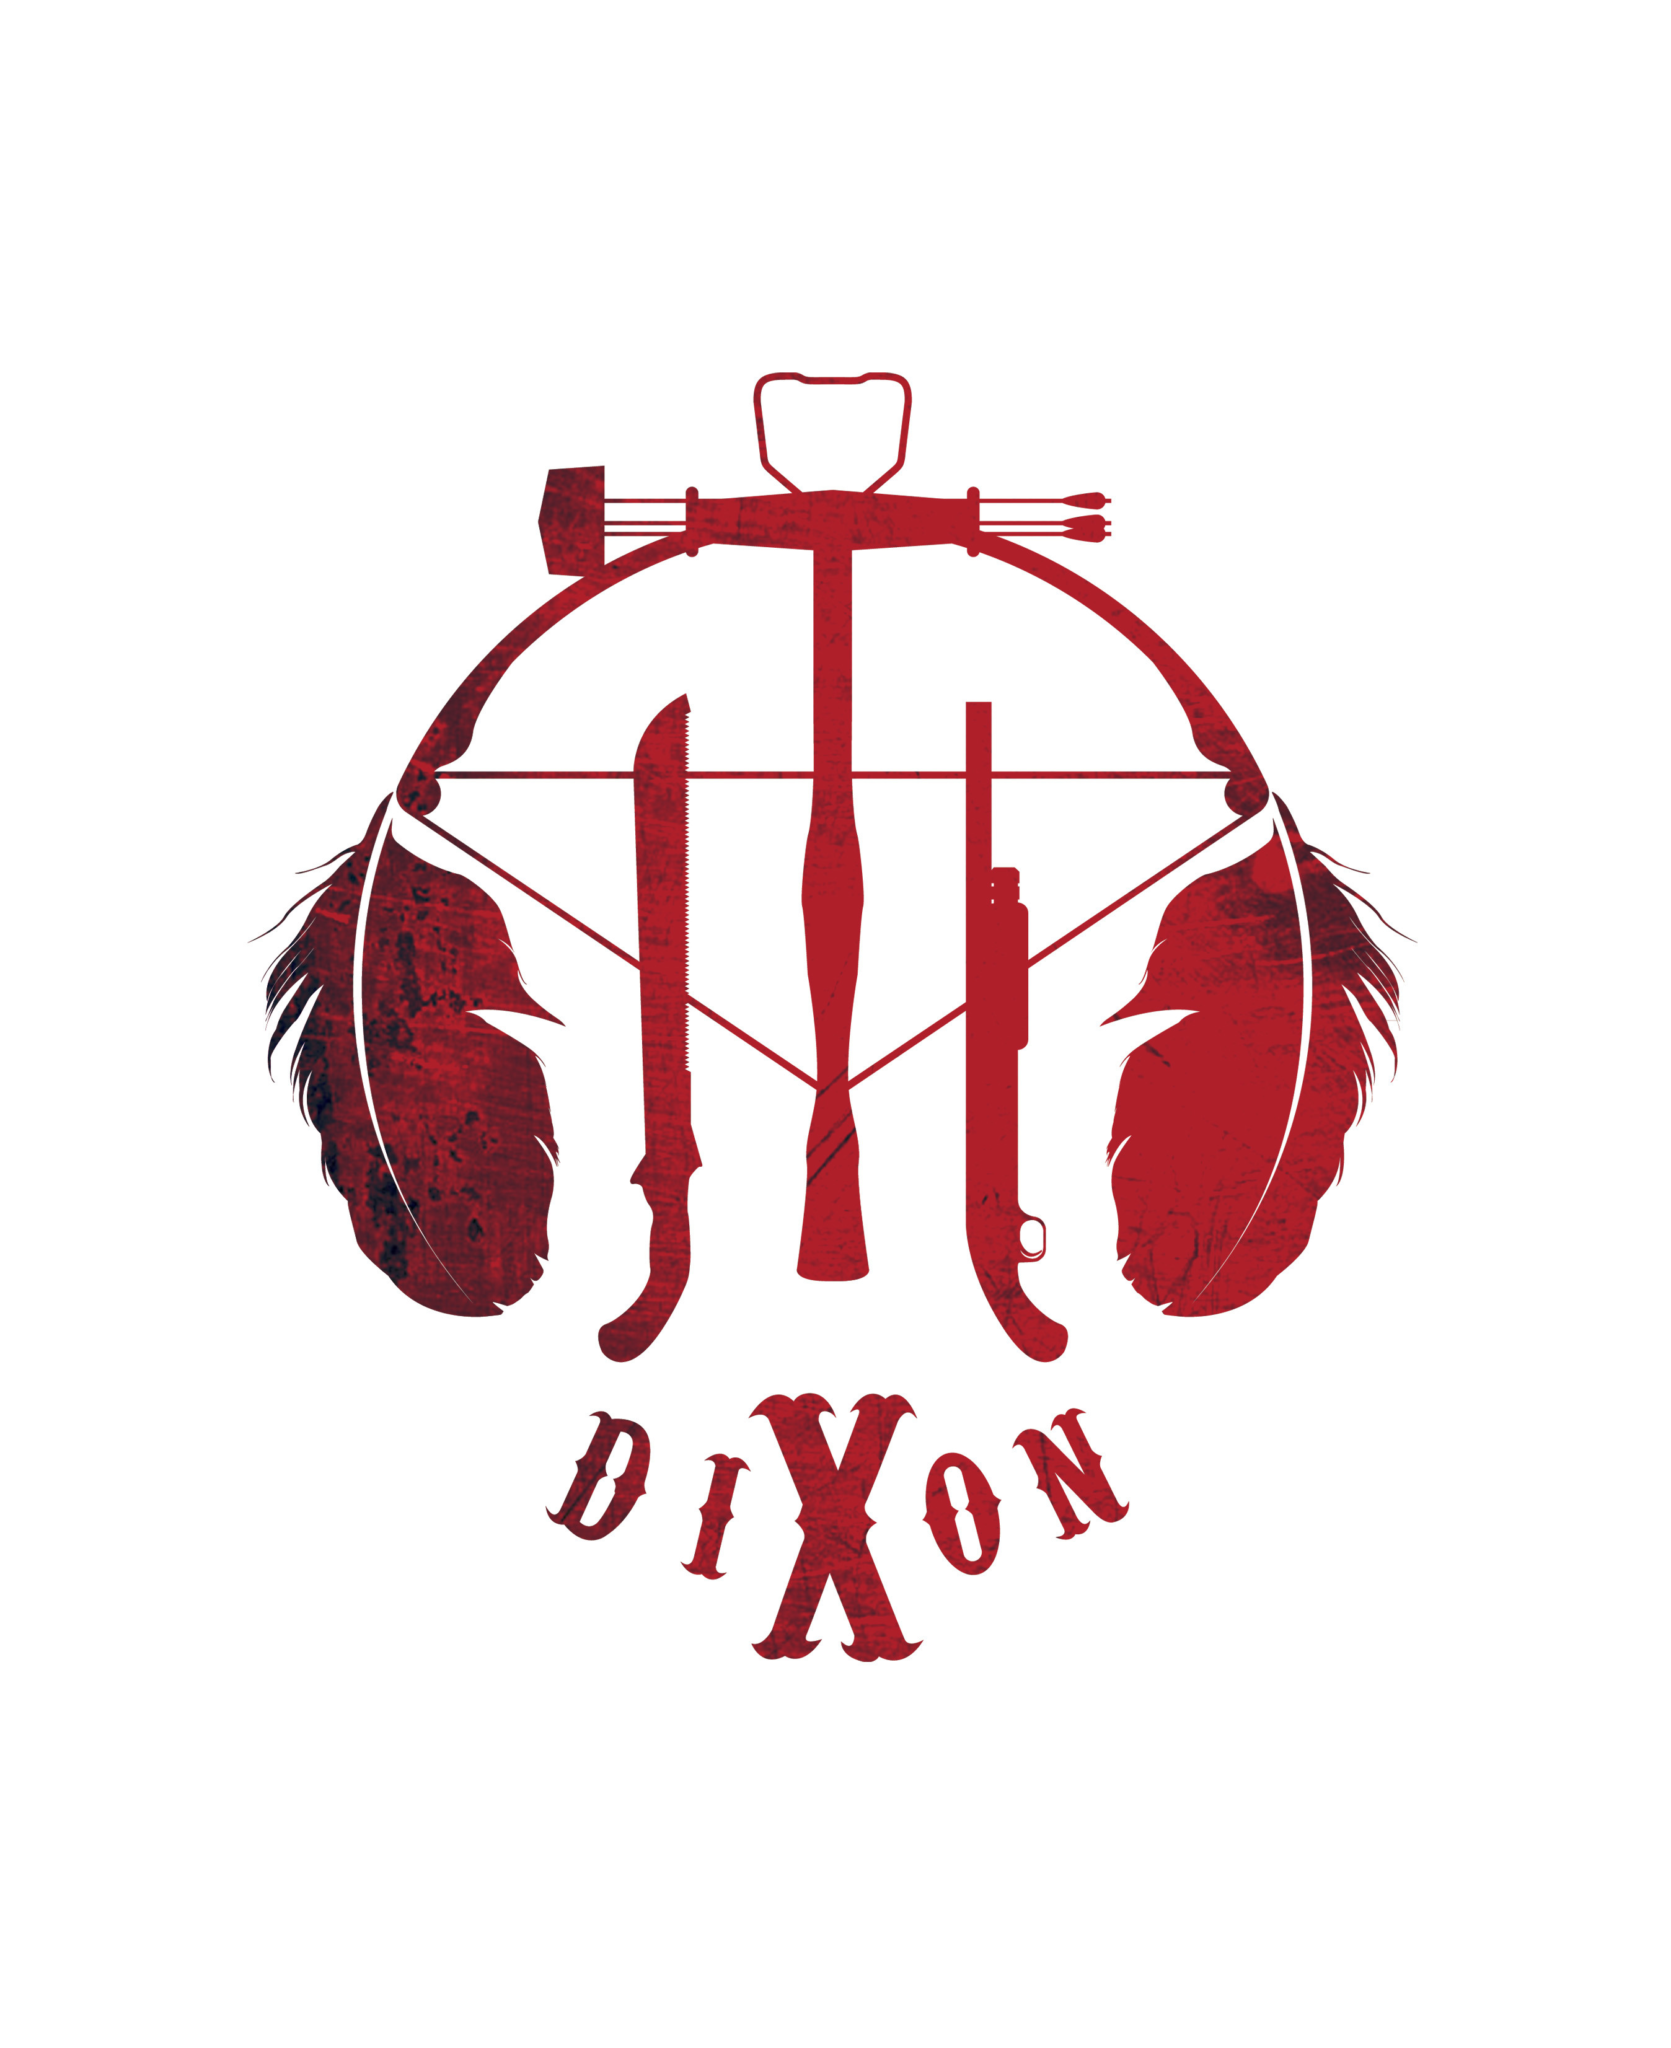 Daryl Dixon T-shirt Designs 51